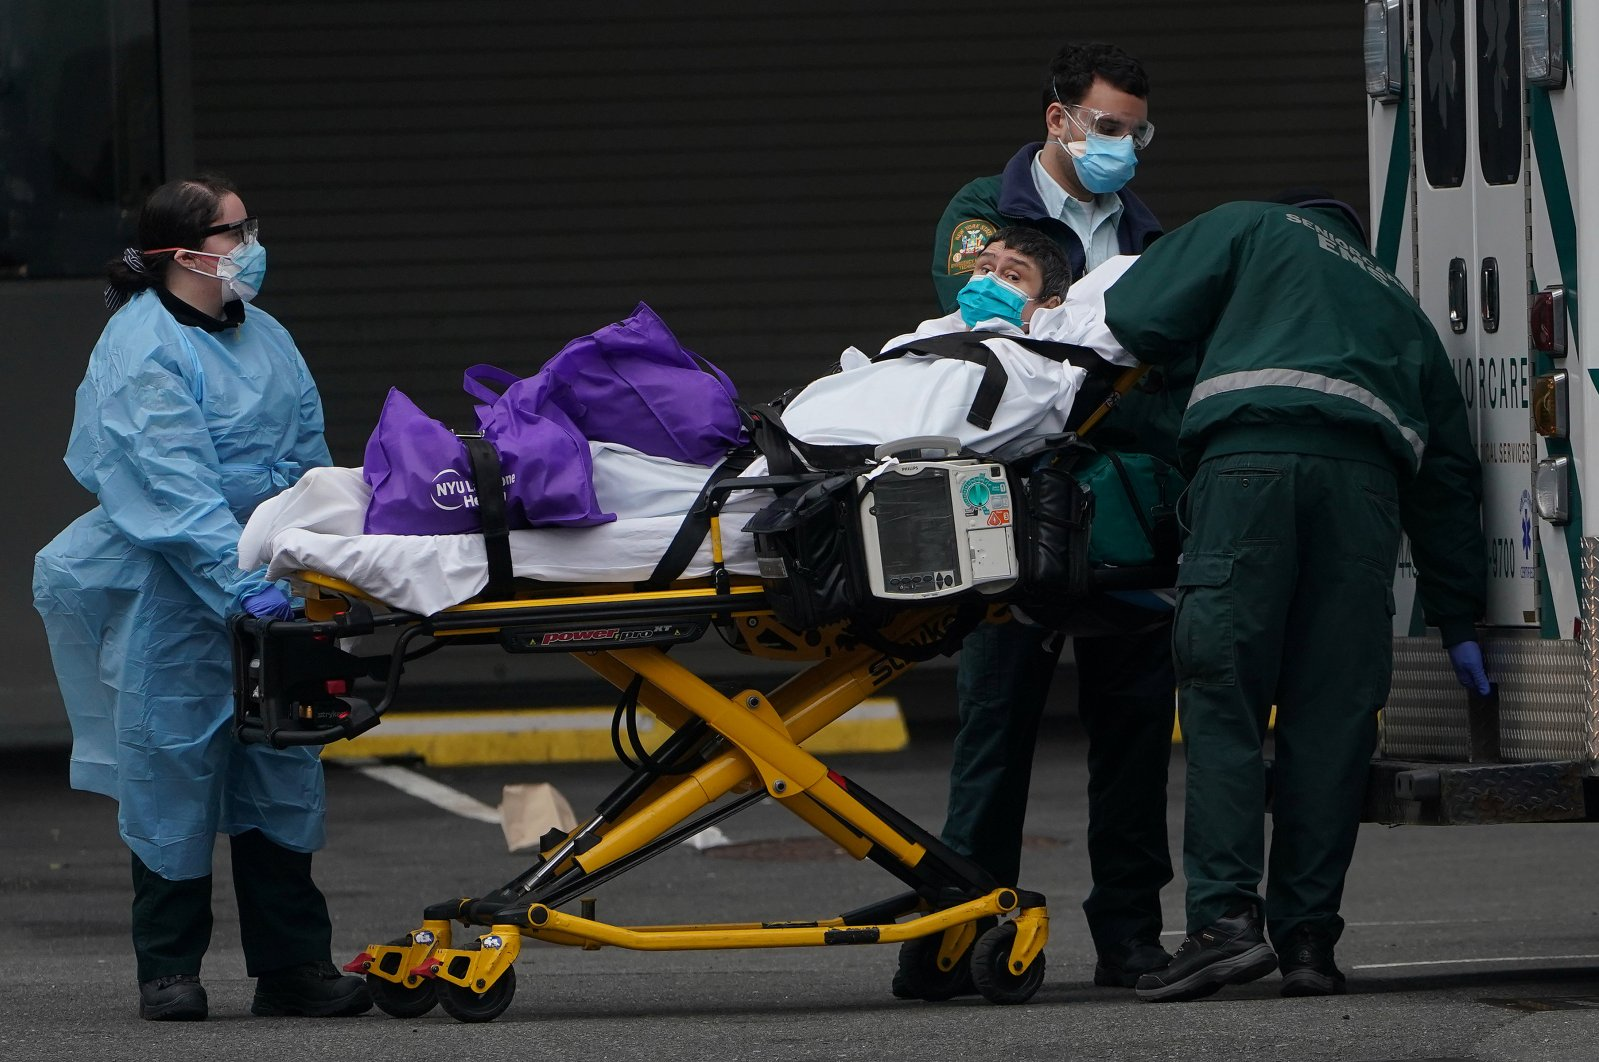 Paramedics move a patient into the hospital during the outbreak of the coronavirus, in the Manhattan borough of New York City, New York, U.S., Wednesday, March 25, 2020. (Reuters Photo)